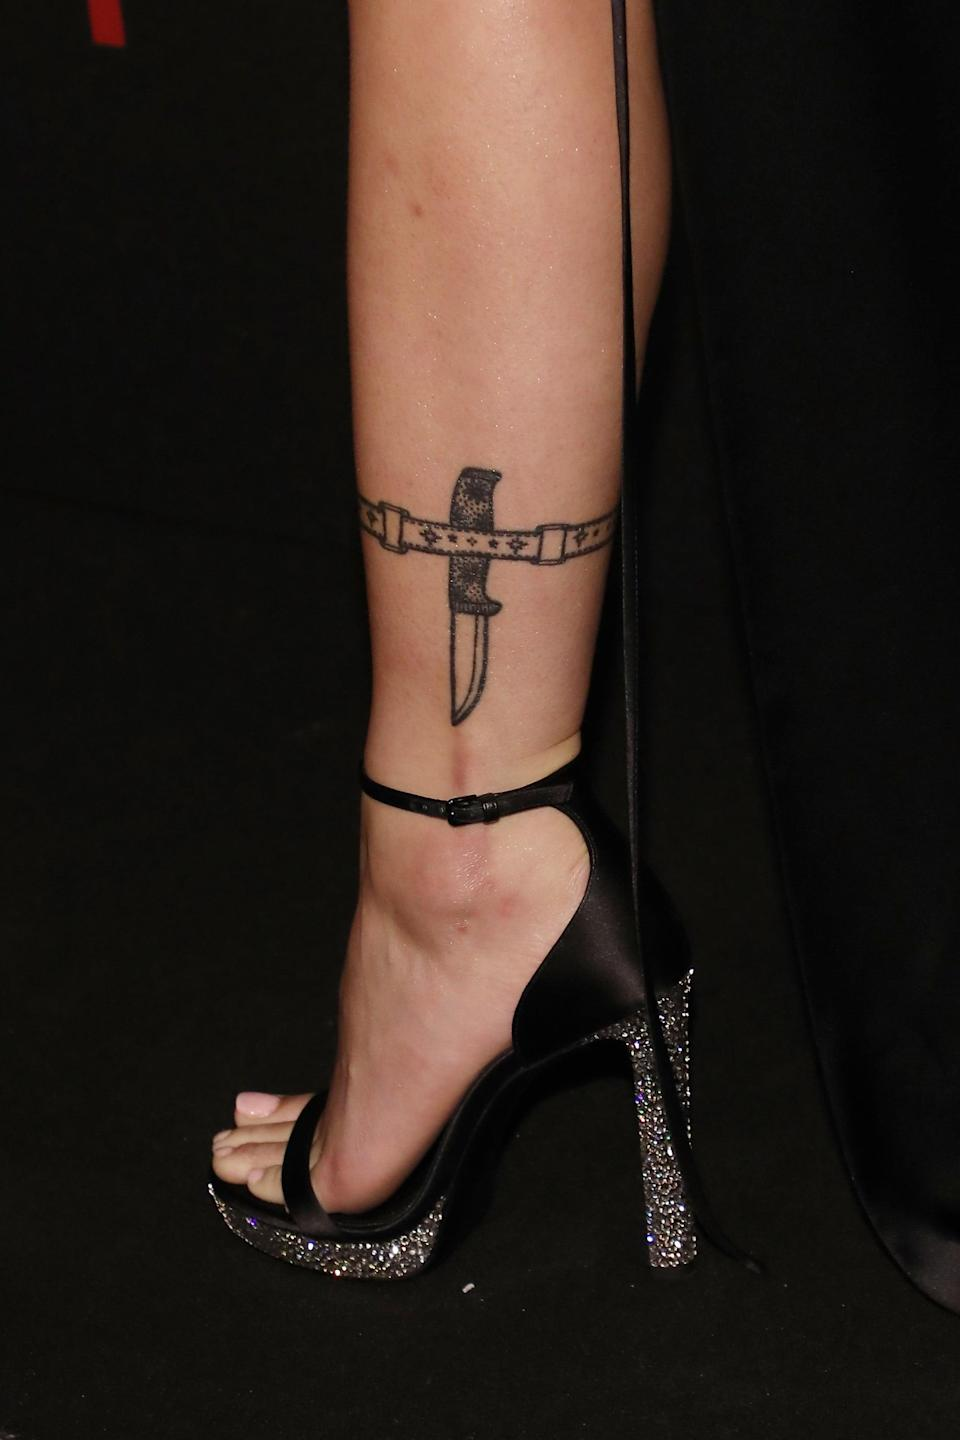 "<p>Halsey got this knife and belt tattoo on her leg in 2014 by tattoo artist <a href=""https://www.instagram.com/emilymalice/"" class=""link rapid-noclick-resp"" rel=""nofollow noopener"" target=""_blank"" data-ylk=""slk:Emily Malice"">Emily Malice</a> in September 2014.</p>"